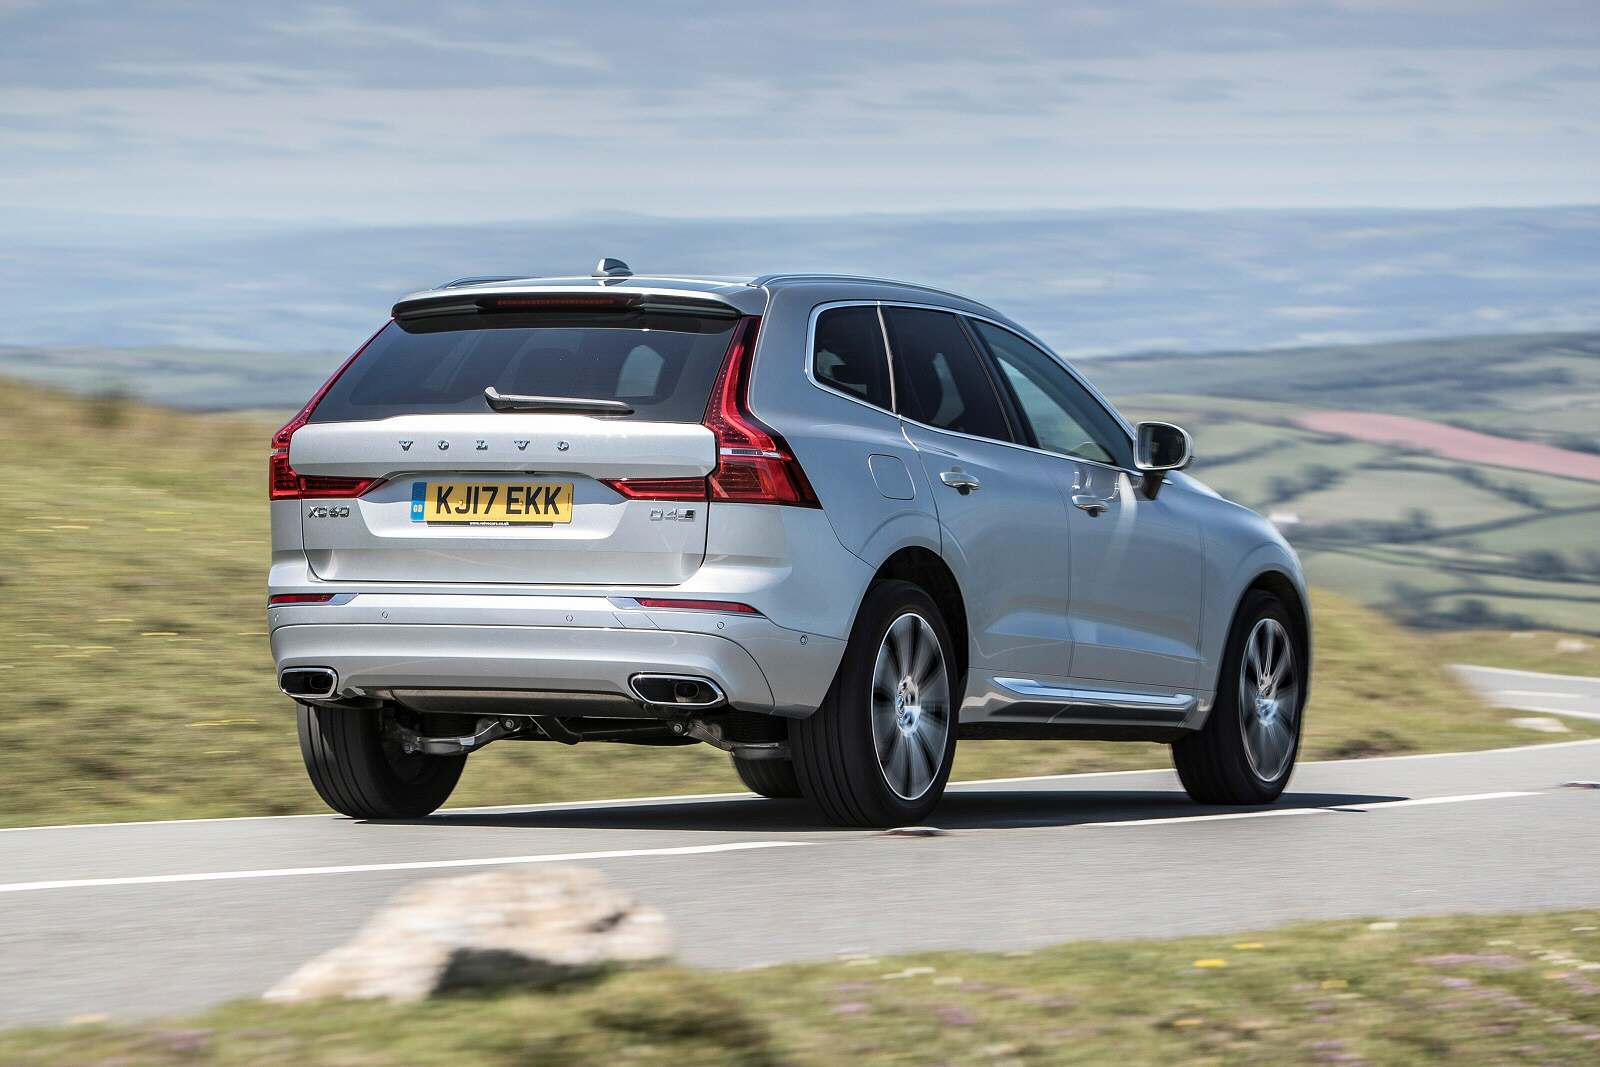 New Volvo Xc60 2 0 D4 Momentum 5dr Awd Geartronic Diesel Estate For Sale Bristol Street